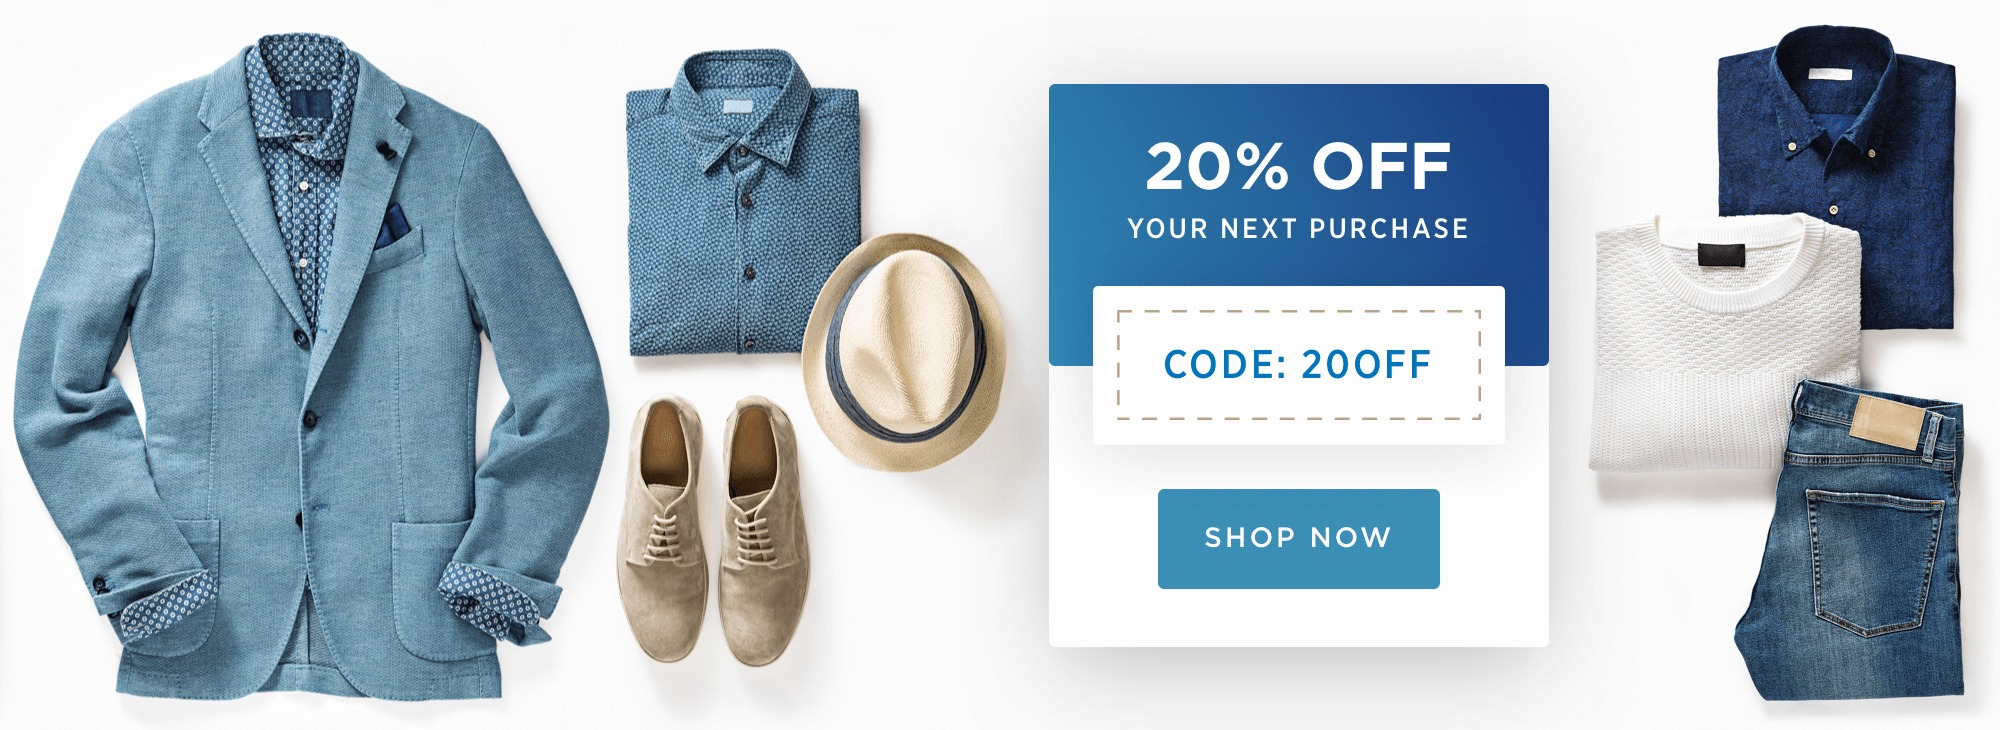 Coupon Marketing in 2021 (Using Strategy to Boost Sales)